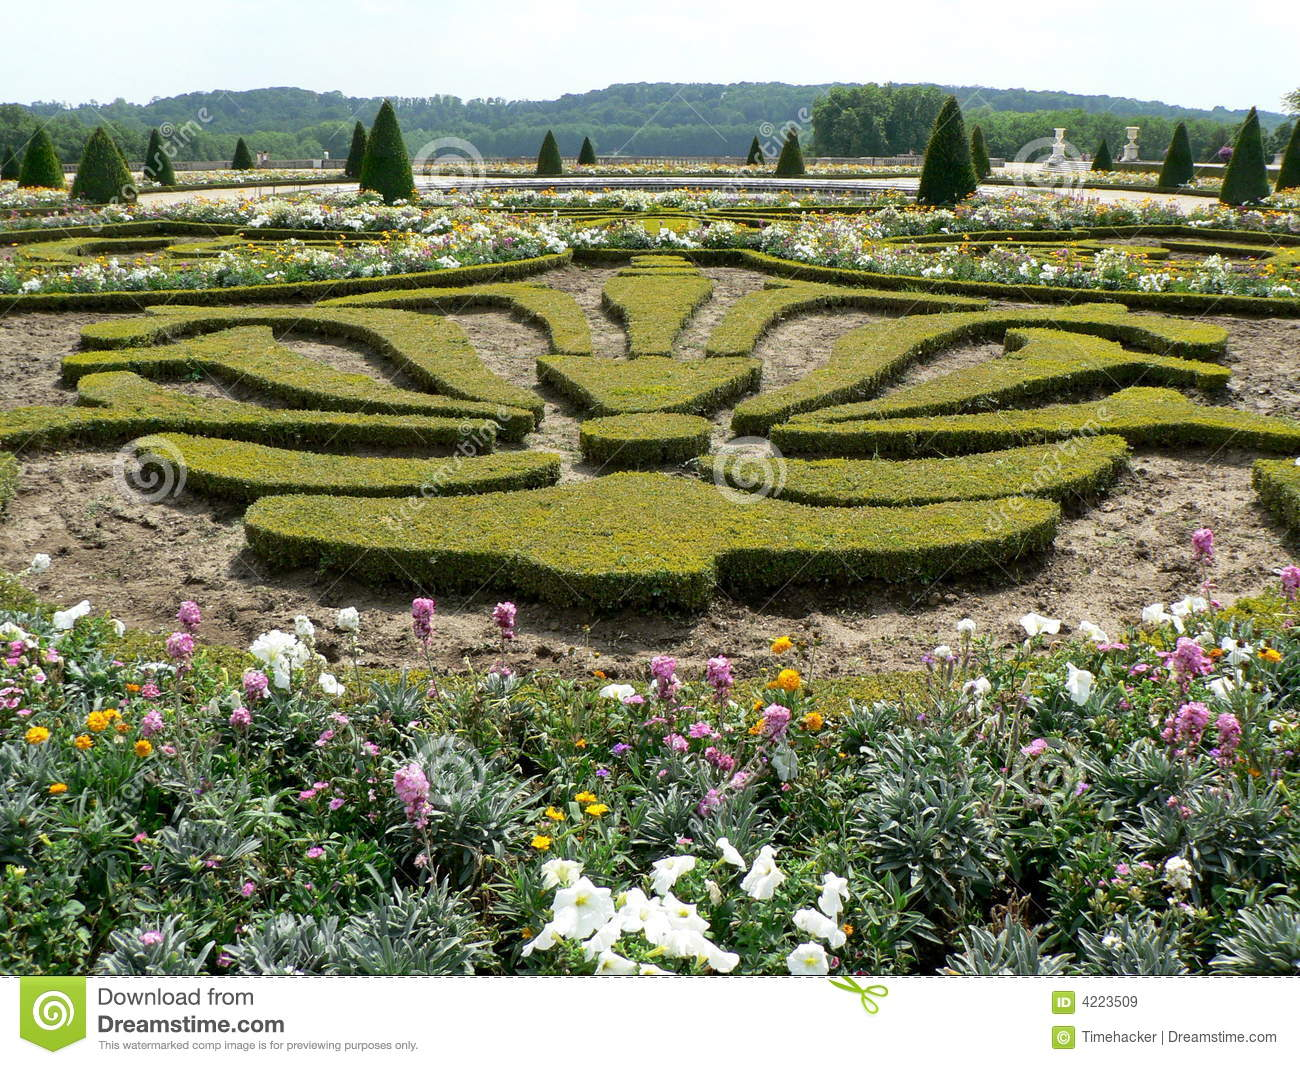 Barockgarten Plan Gardens Of Versailles Stock Image Image Of King Flower